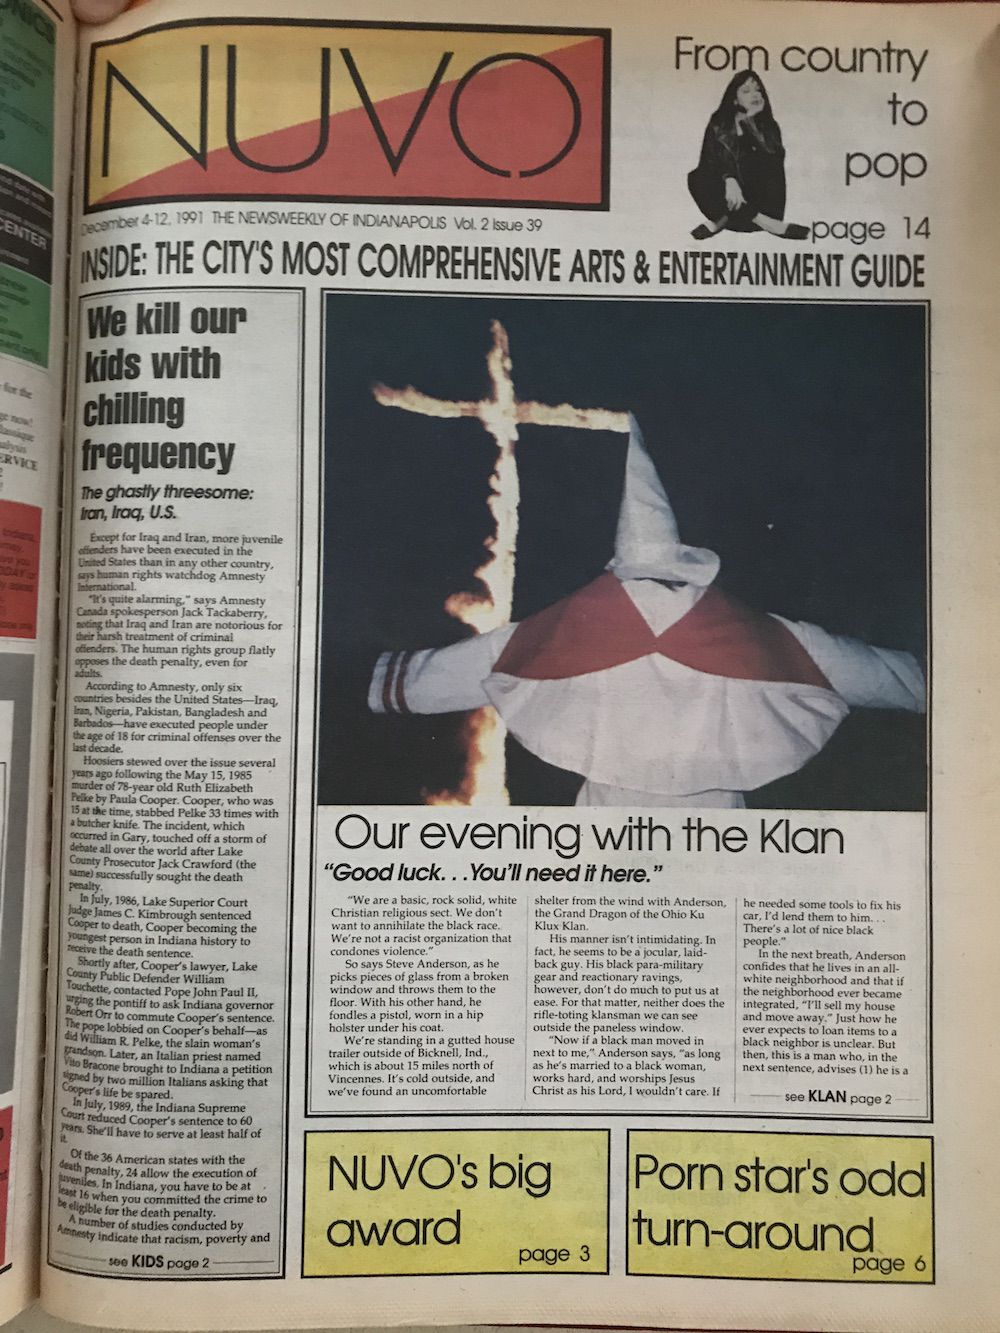 Our evening with the Klan